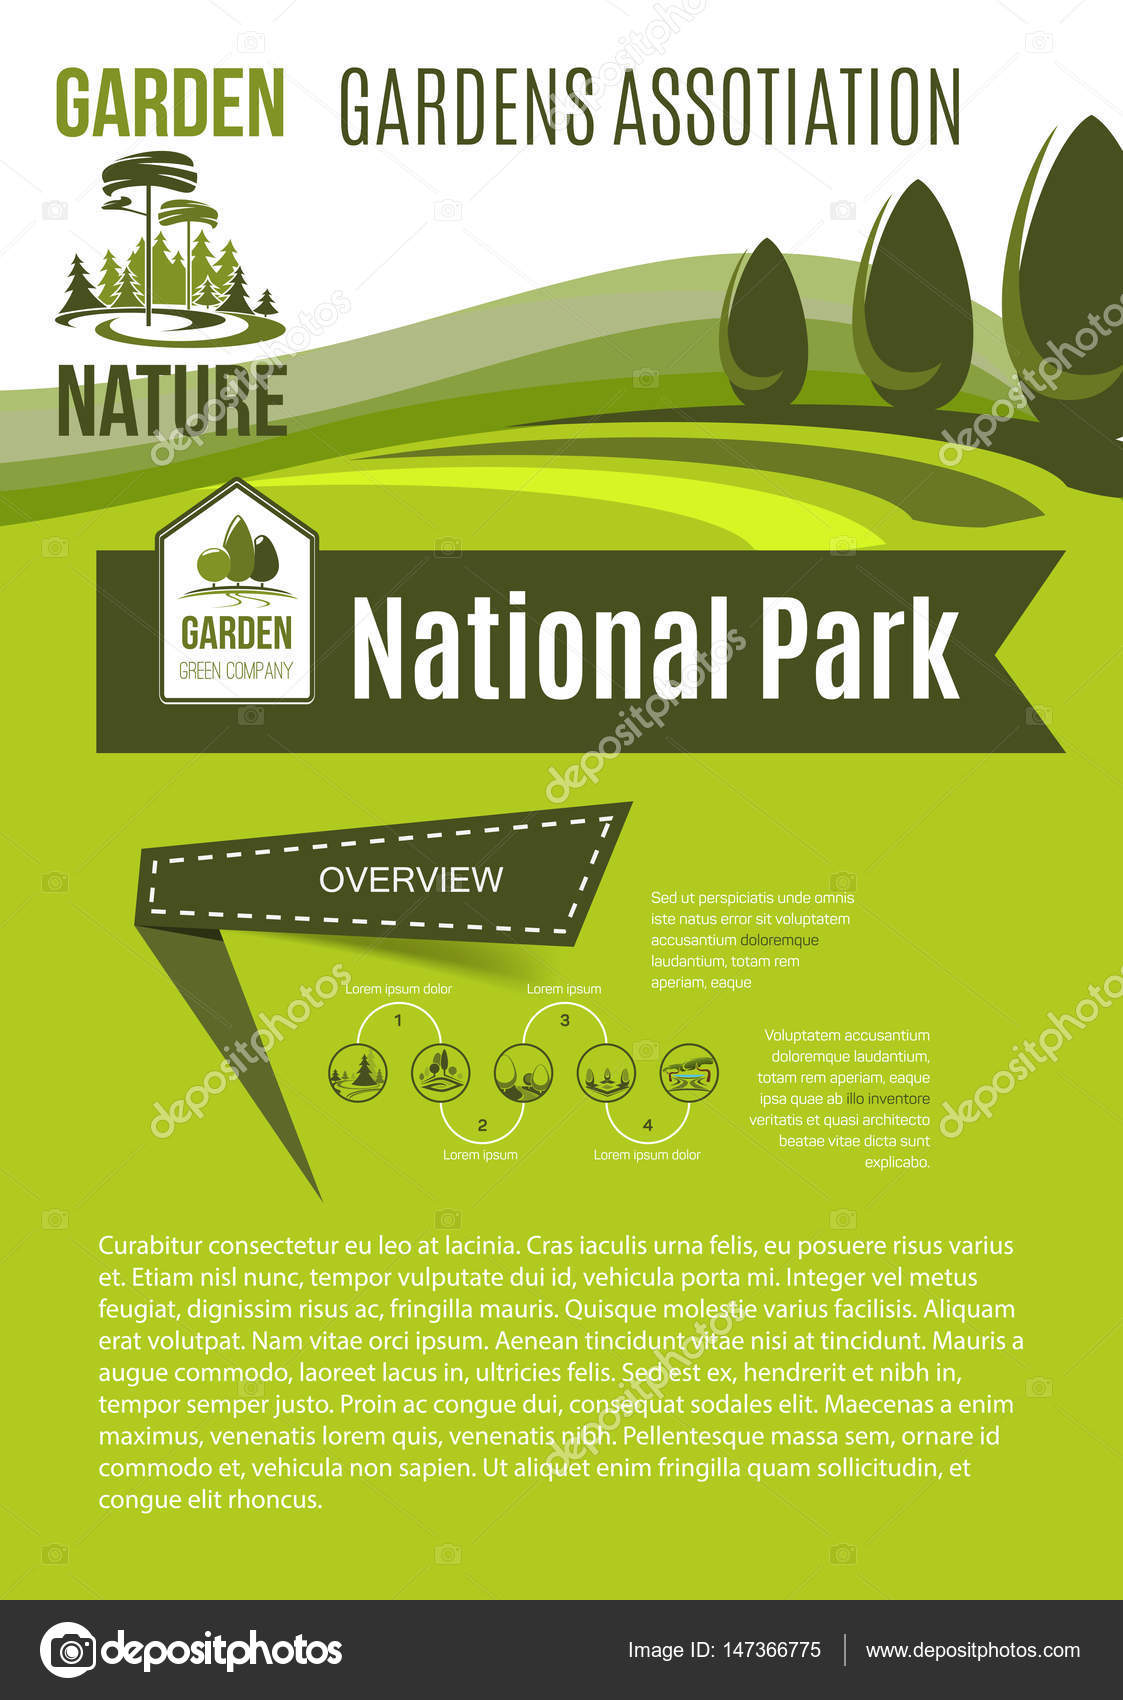 Nature and gardens association vector poster — Stock Vector ...